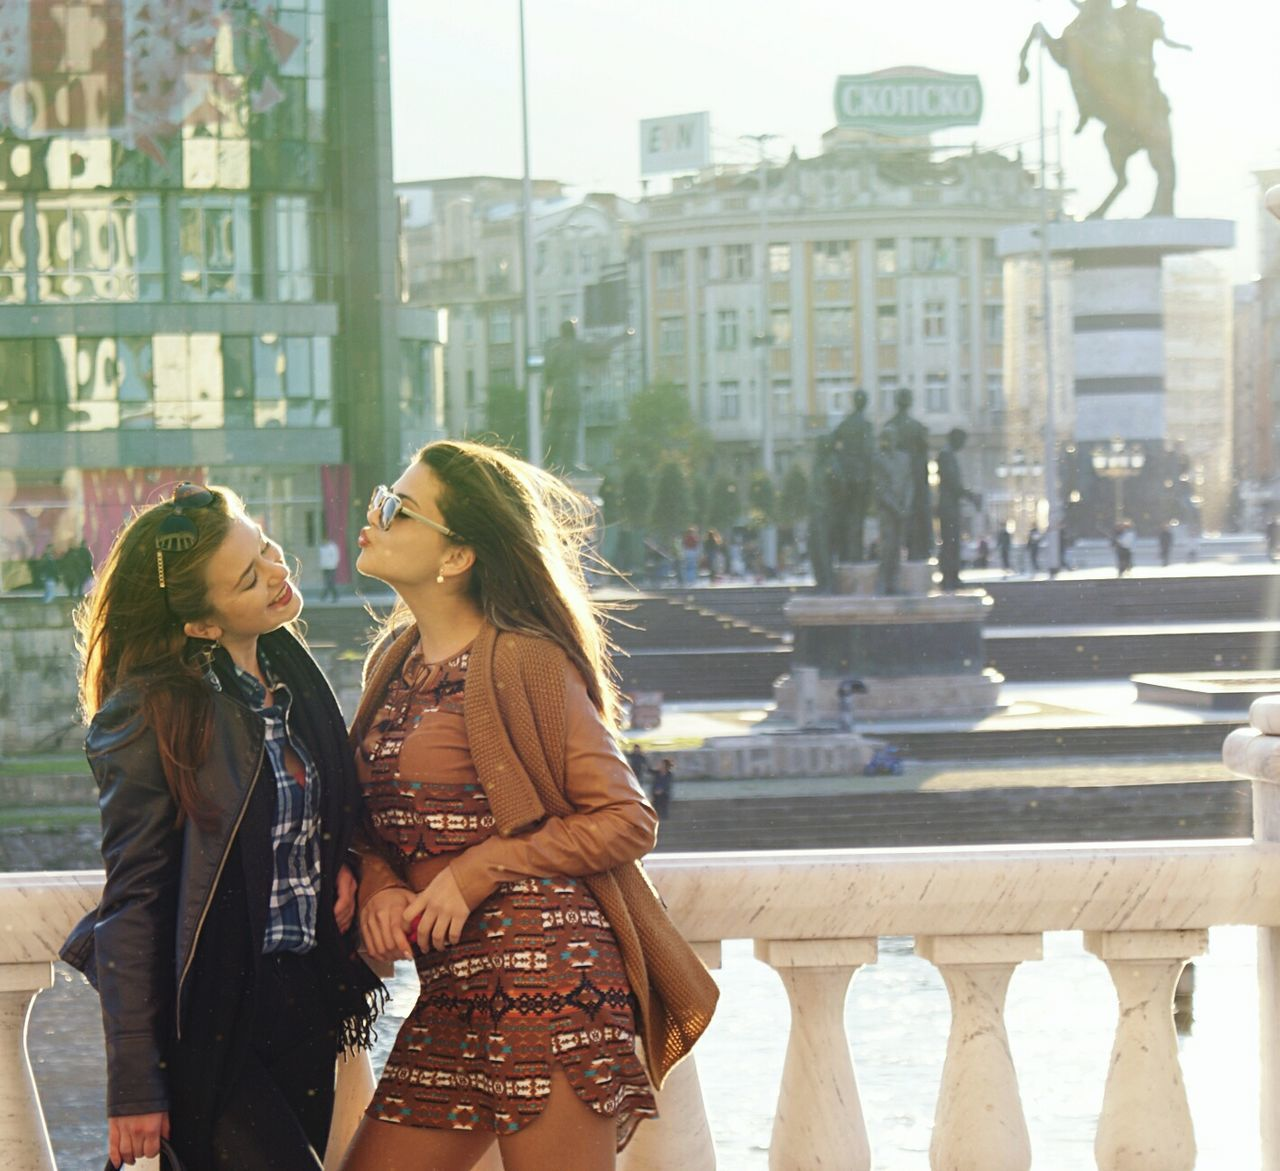 city, building exterior, architecture, built structure, young adult, young women, two people, city life, outdoors, smiling, real people, happiness, women, lifestyles, togetherness, friendship, day, adult, people, adults only